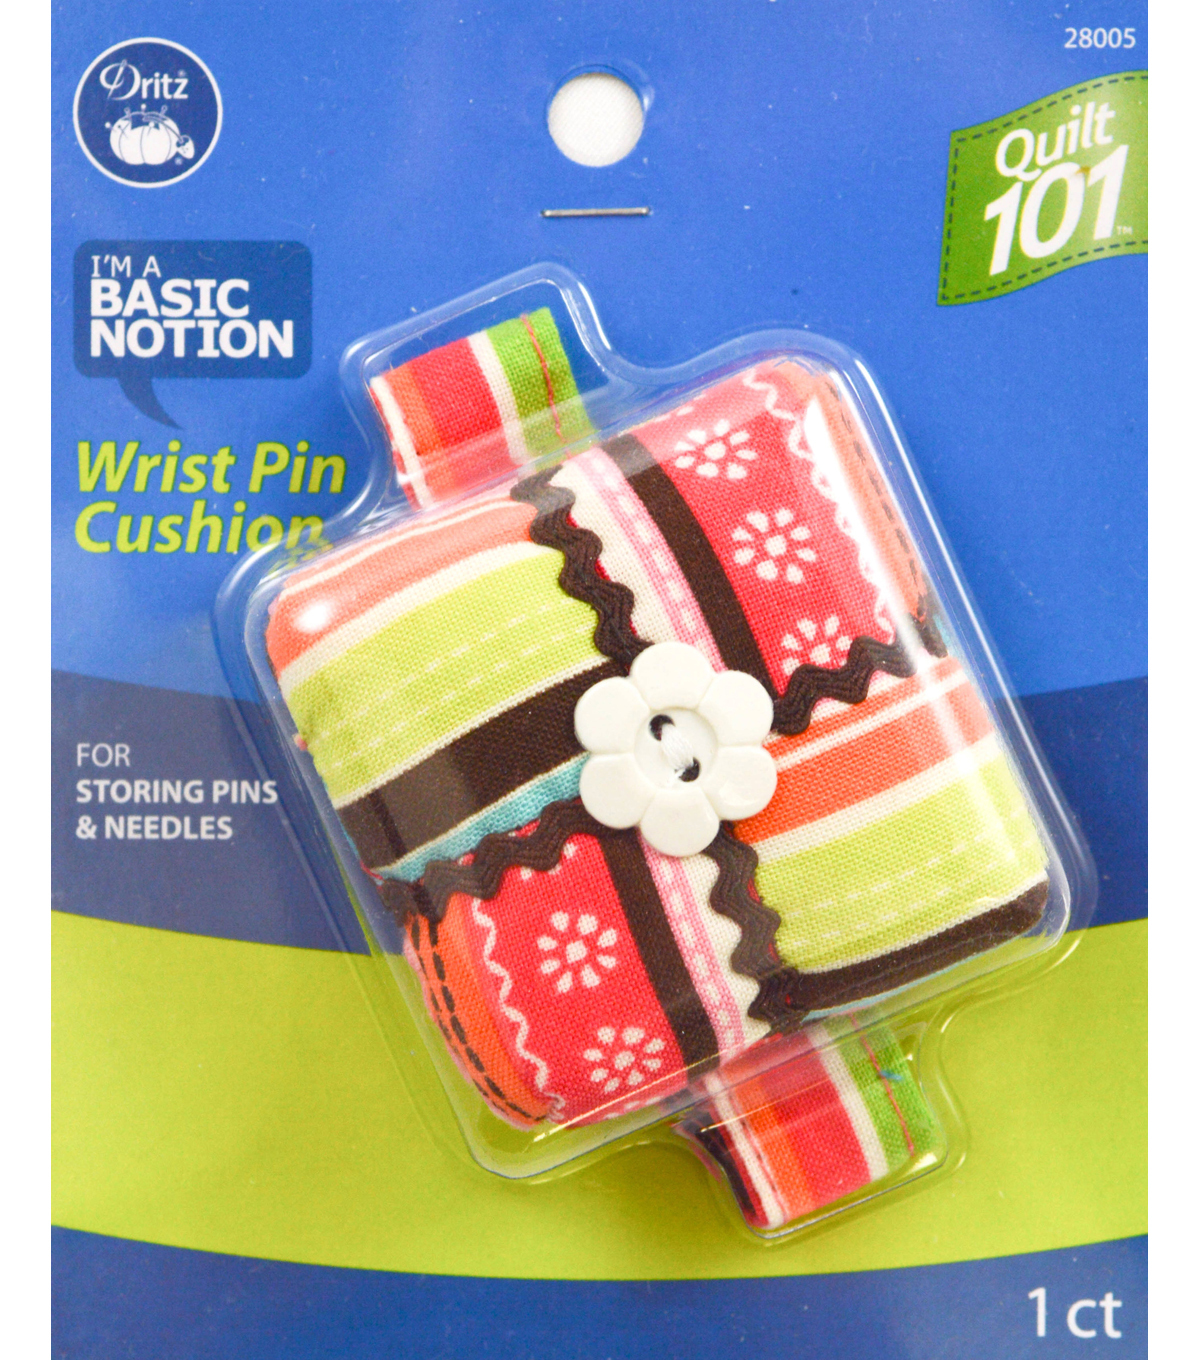 Dritz Quilt 101 Wrist Pin Cushion